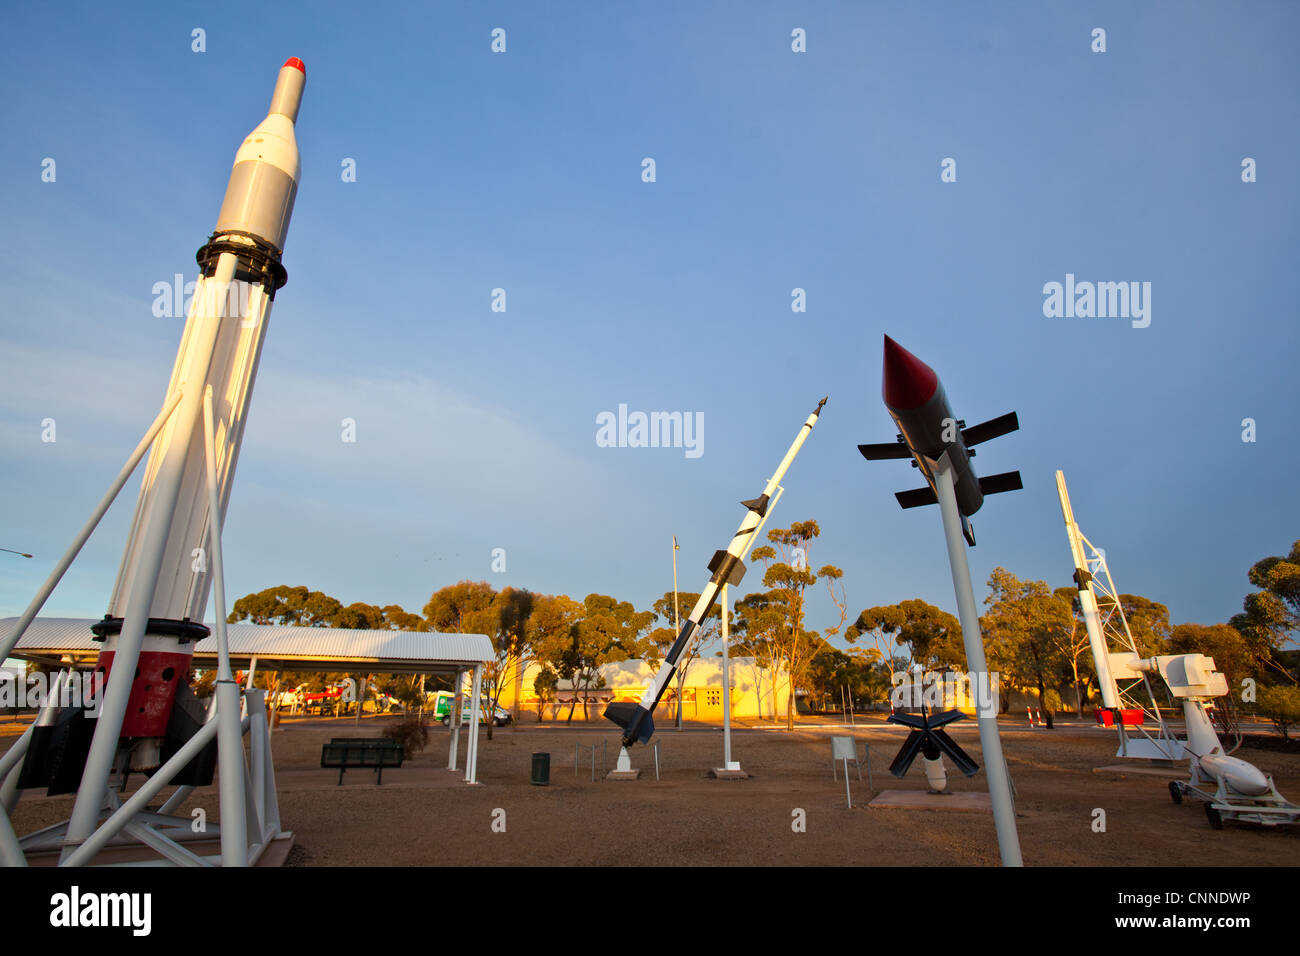 Woomera Rocket, missile, Airforce and Space display. South Australia. - Stock Image